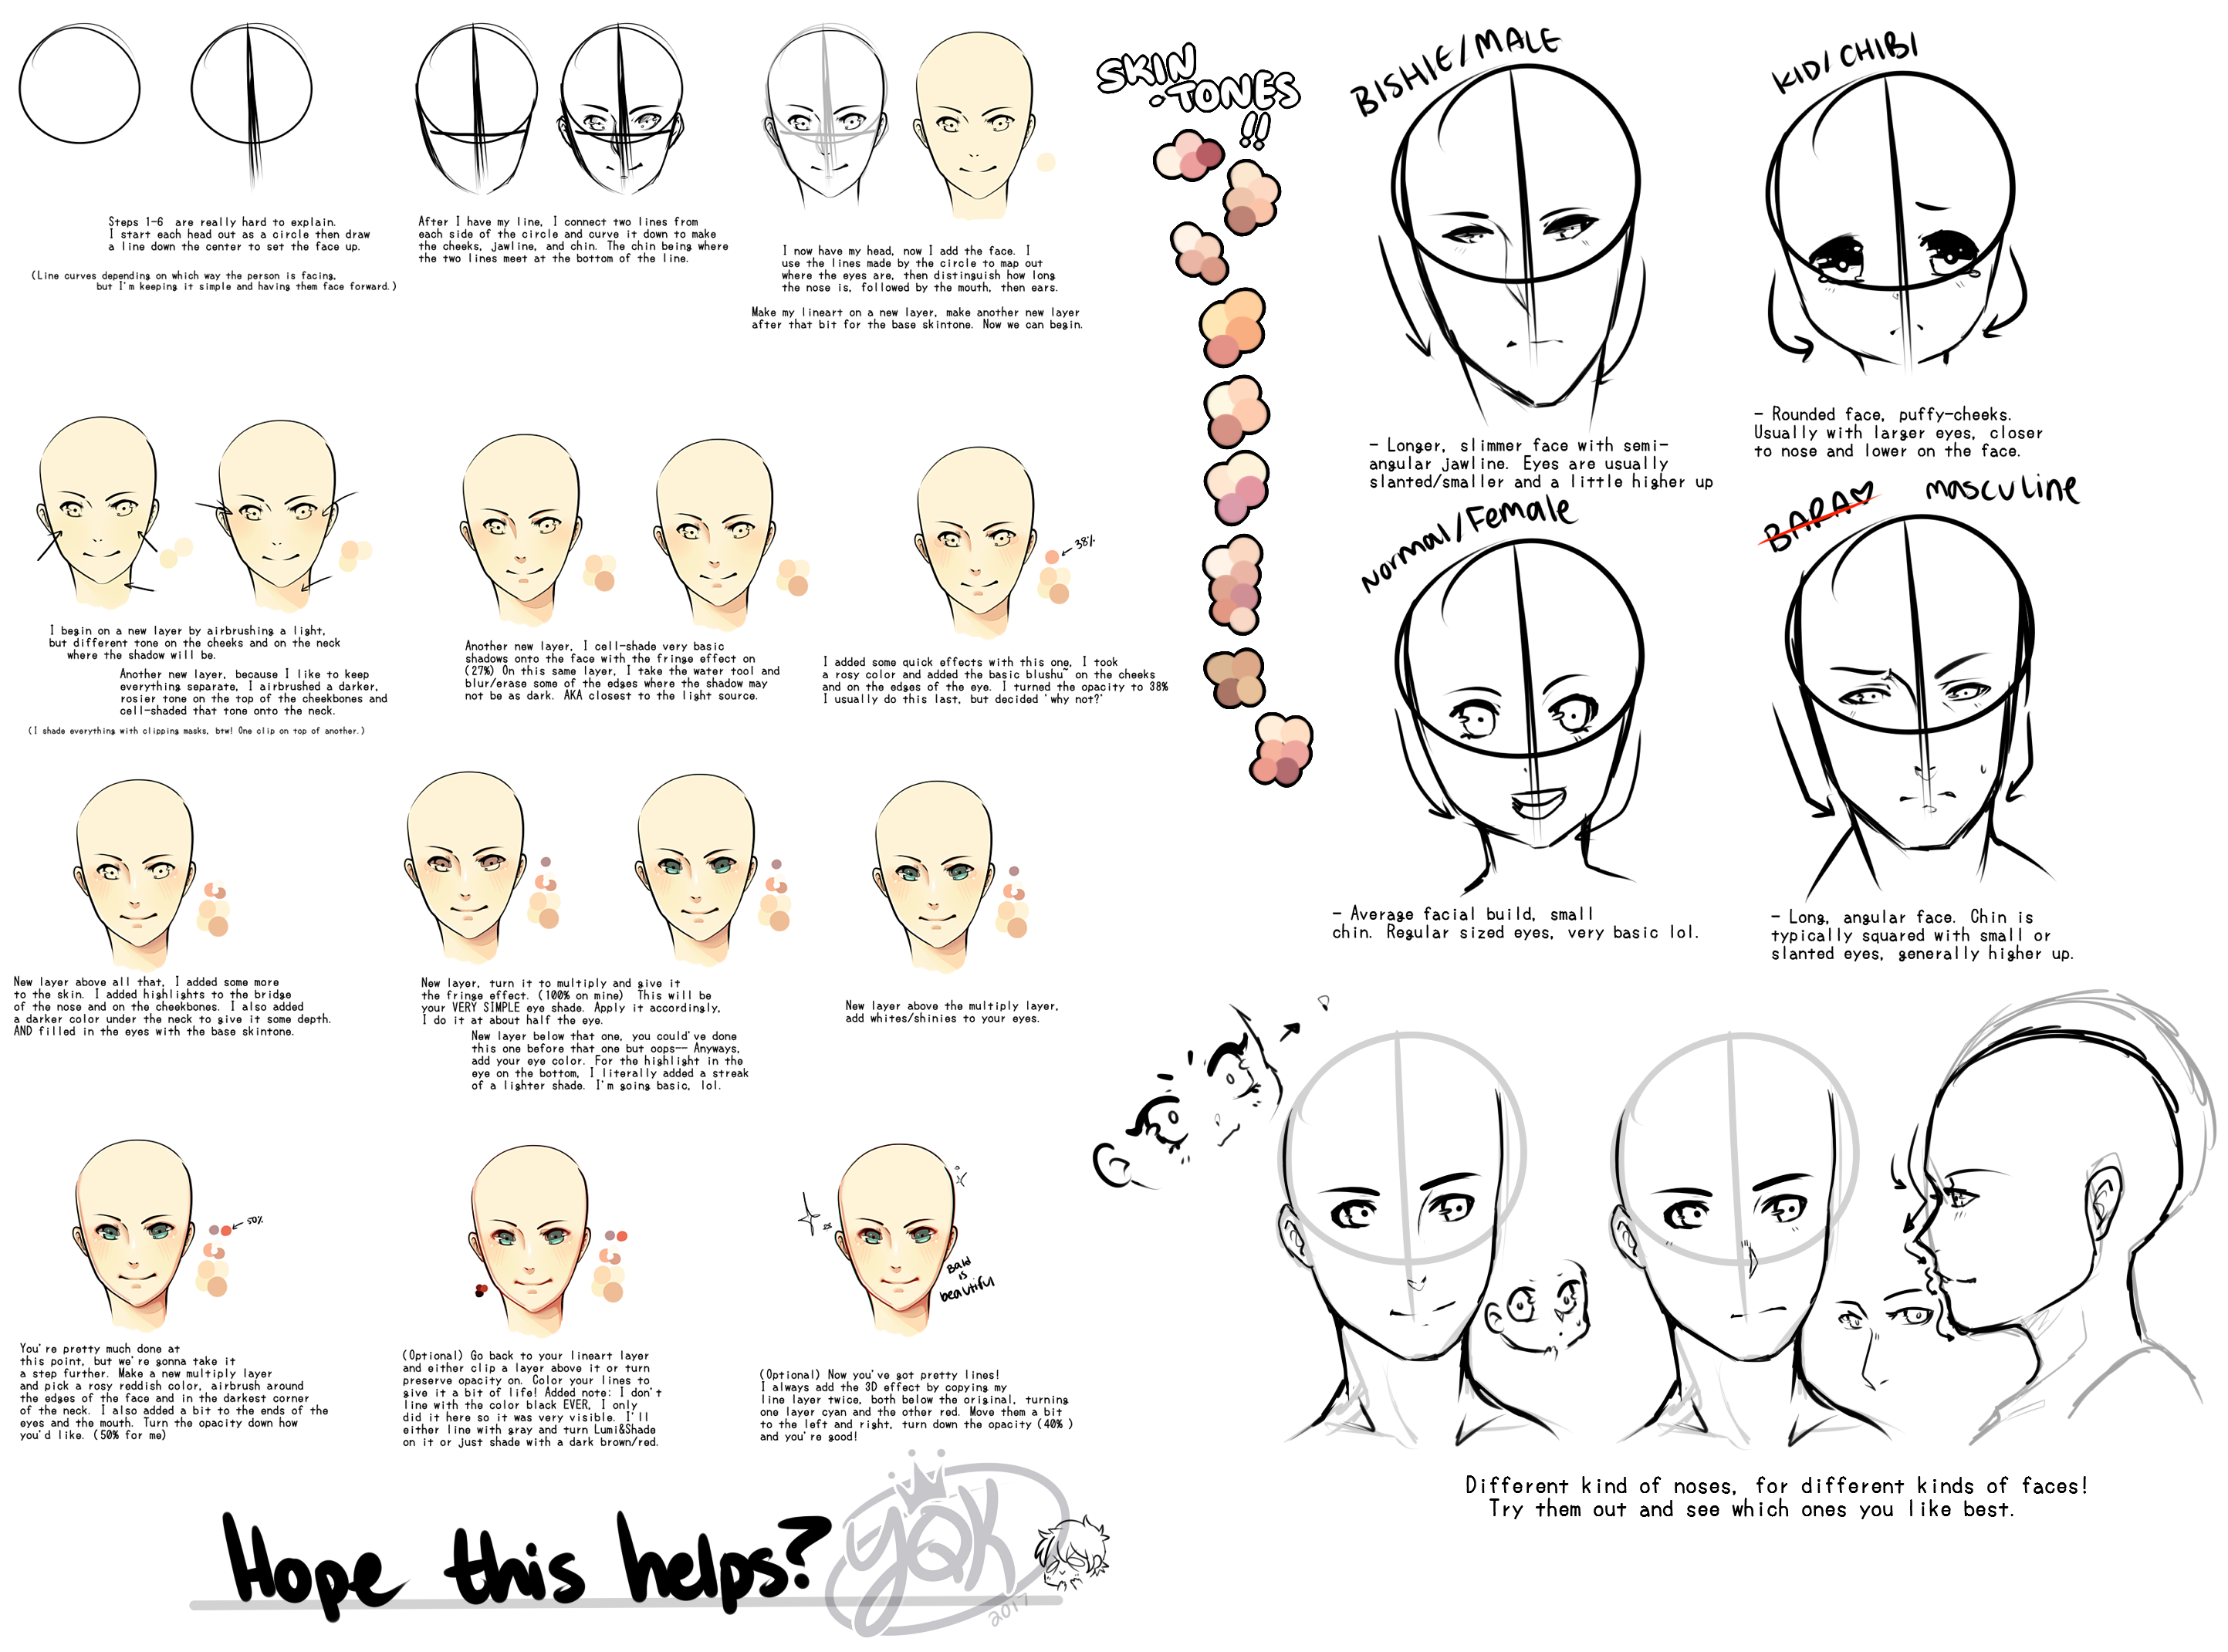 [TUT] SKETCHY Basic Anime Heads and Faces by YQK